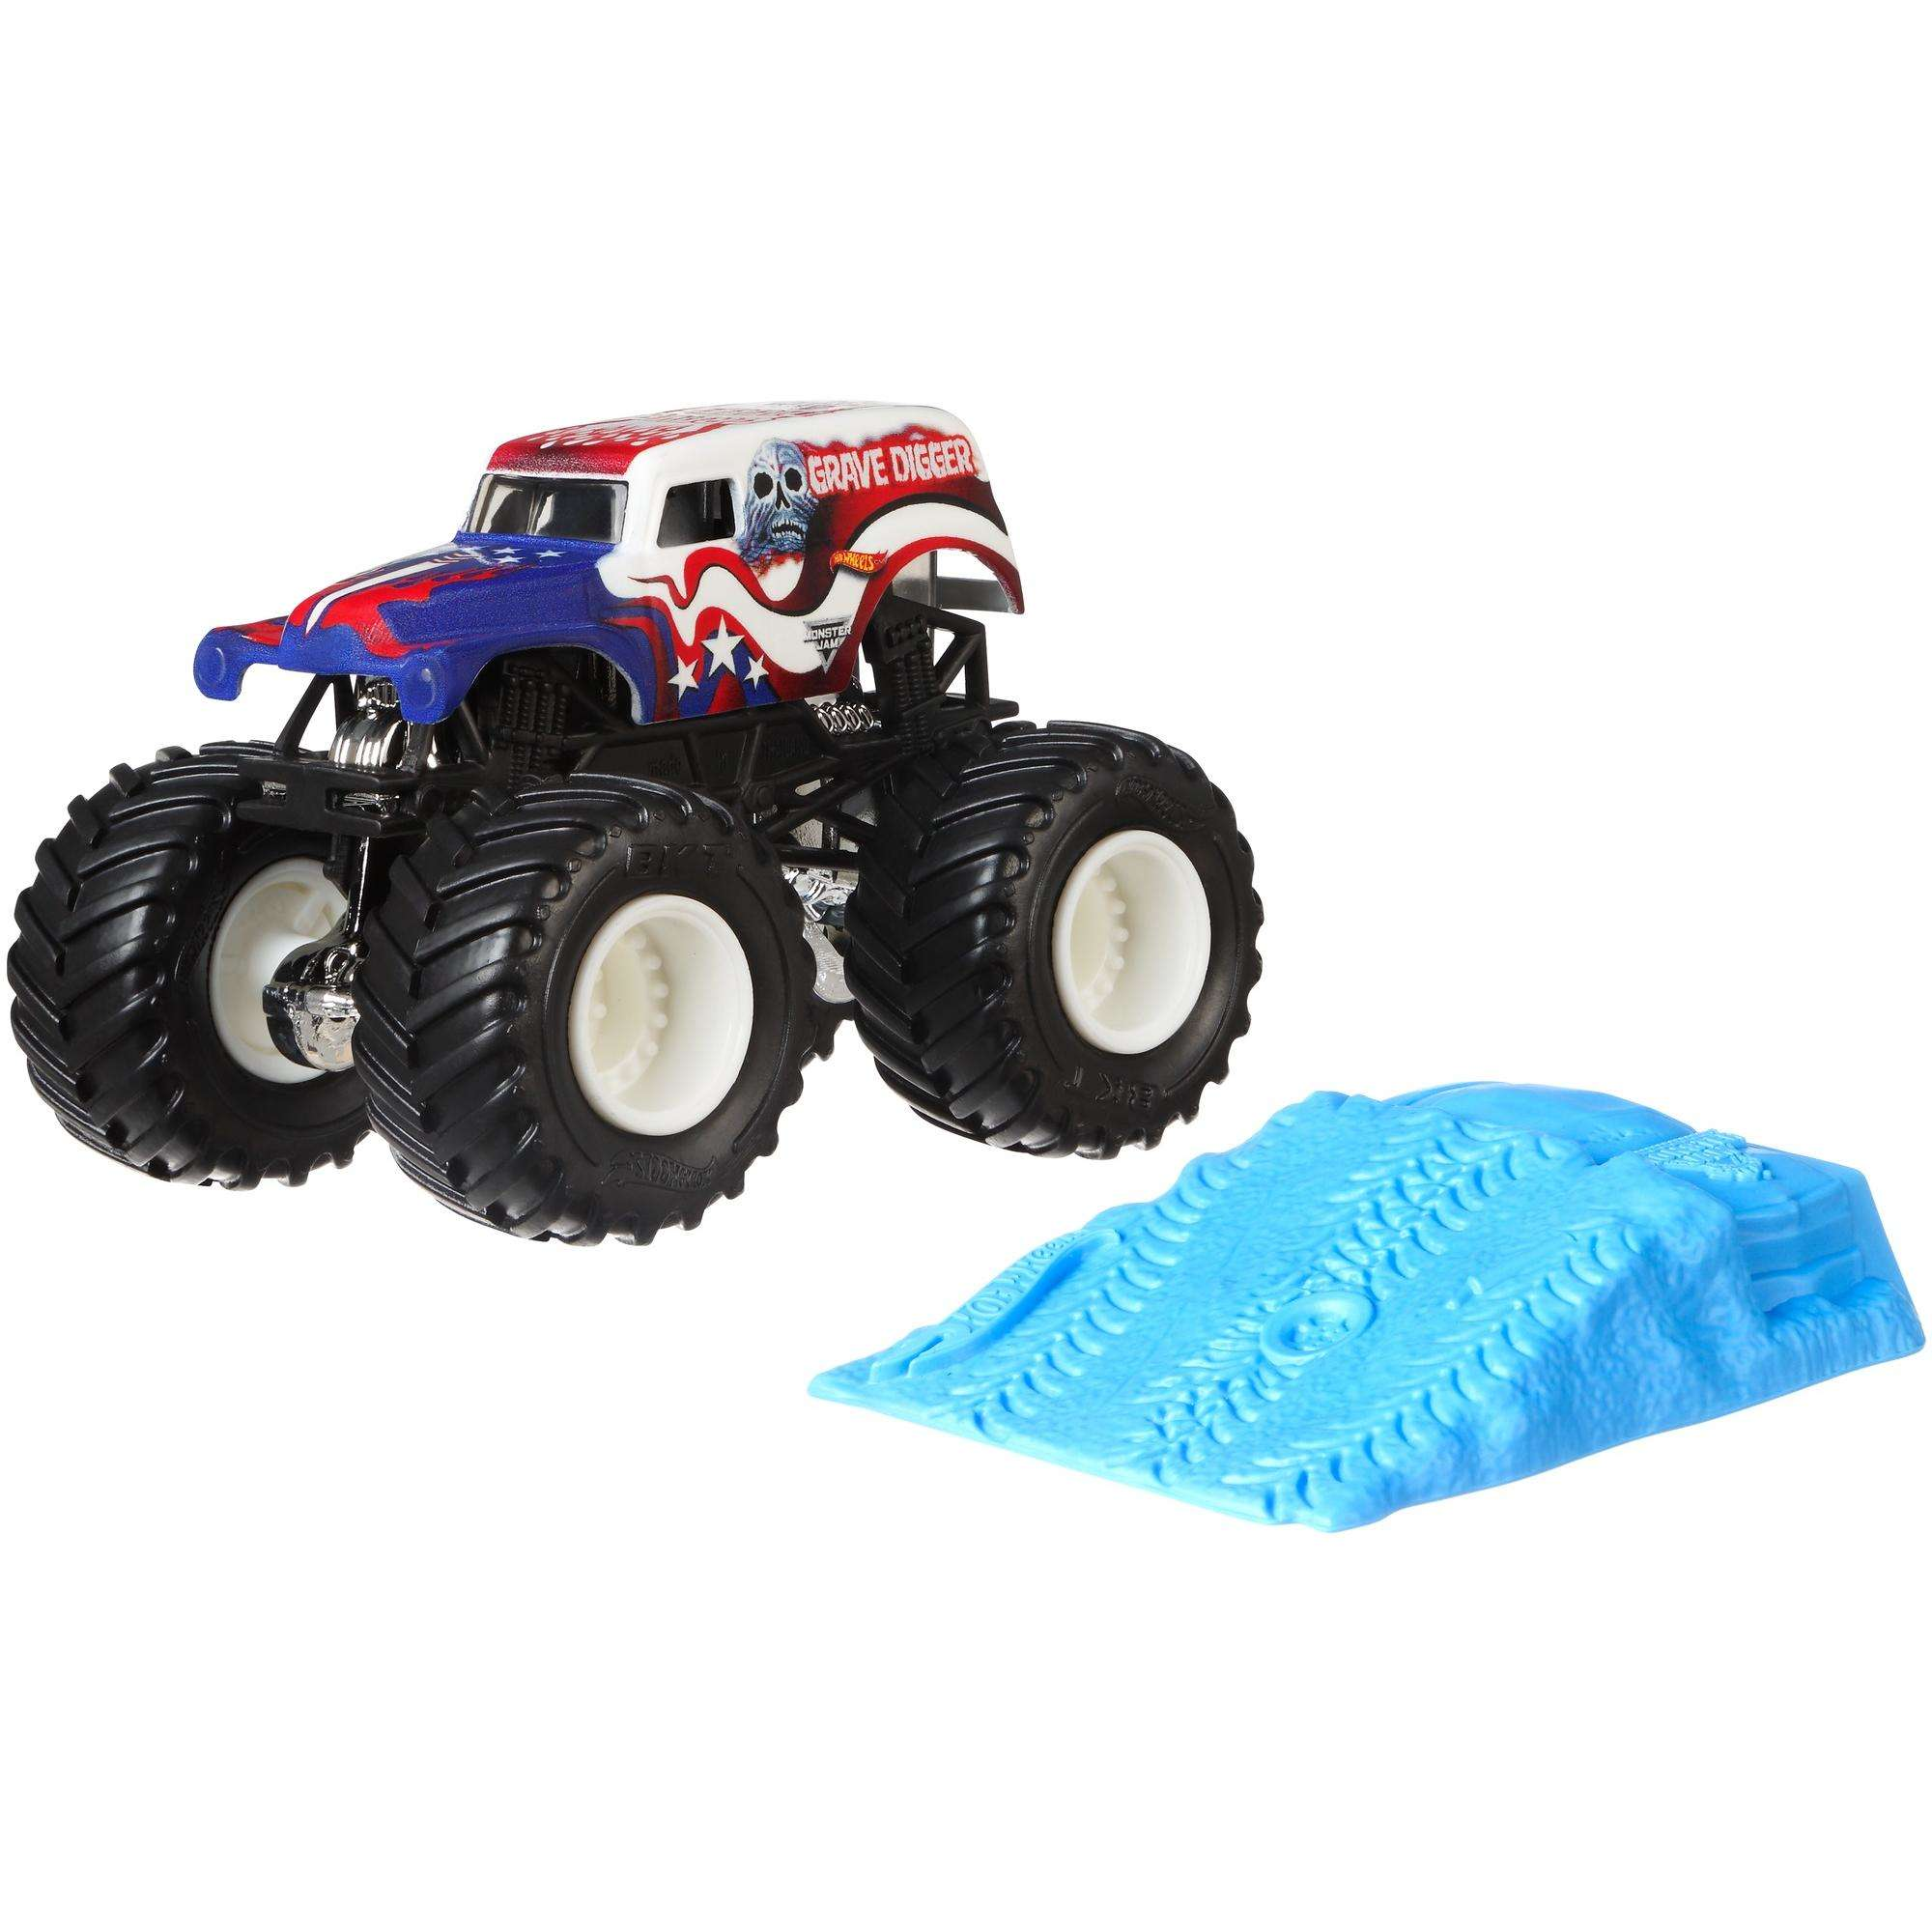 Hot Wheels Monster Jam 1:64 Scale Vehicle (Styles May Vary)